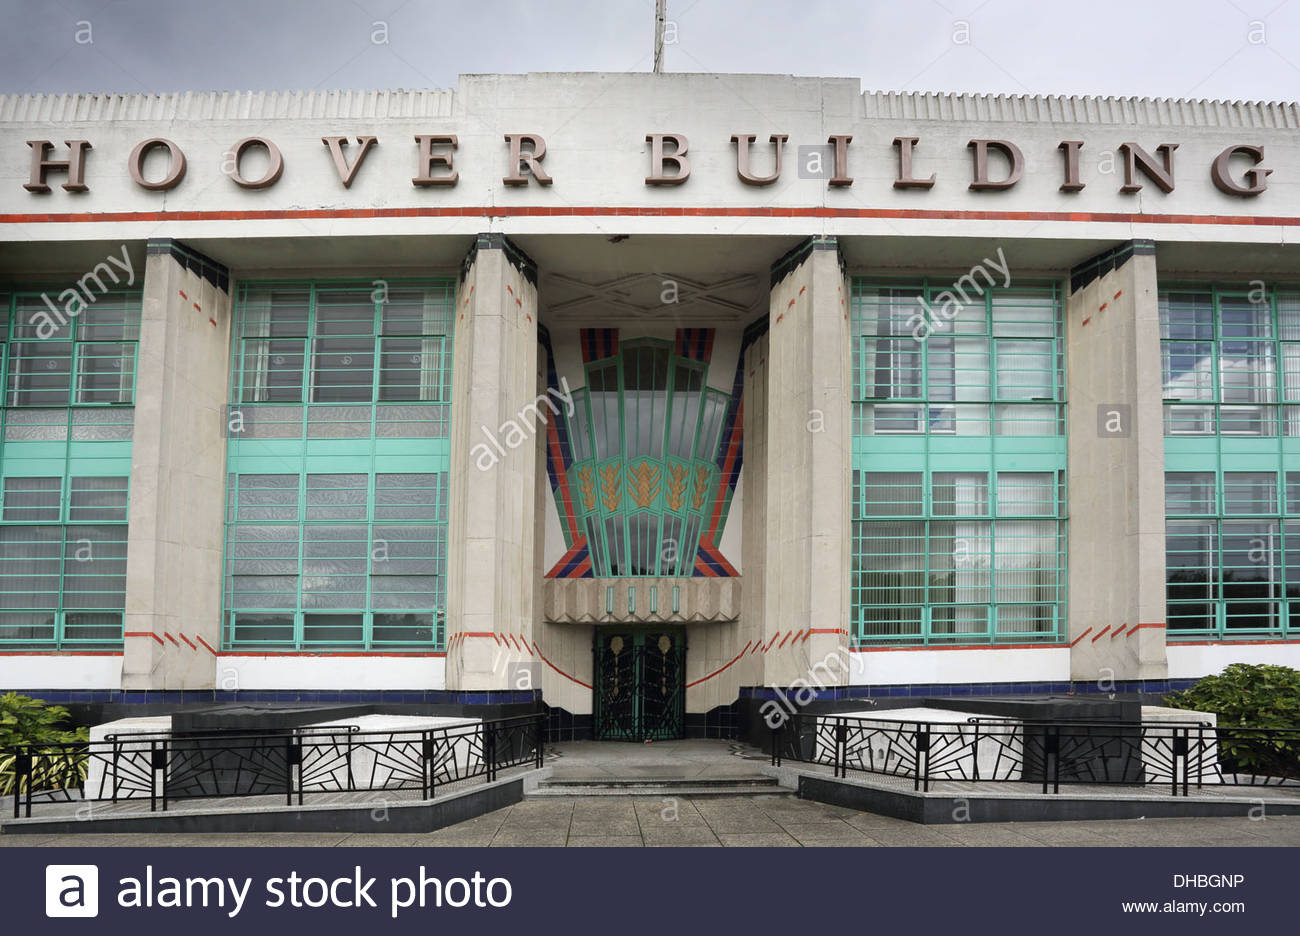 the art deco hoover building in north london stock photo royalty free image 62334882 alamy. Black Bedroom Furniture Sets. Home Design Ideas